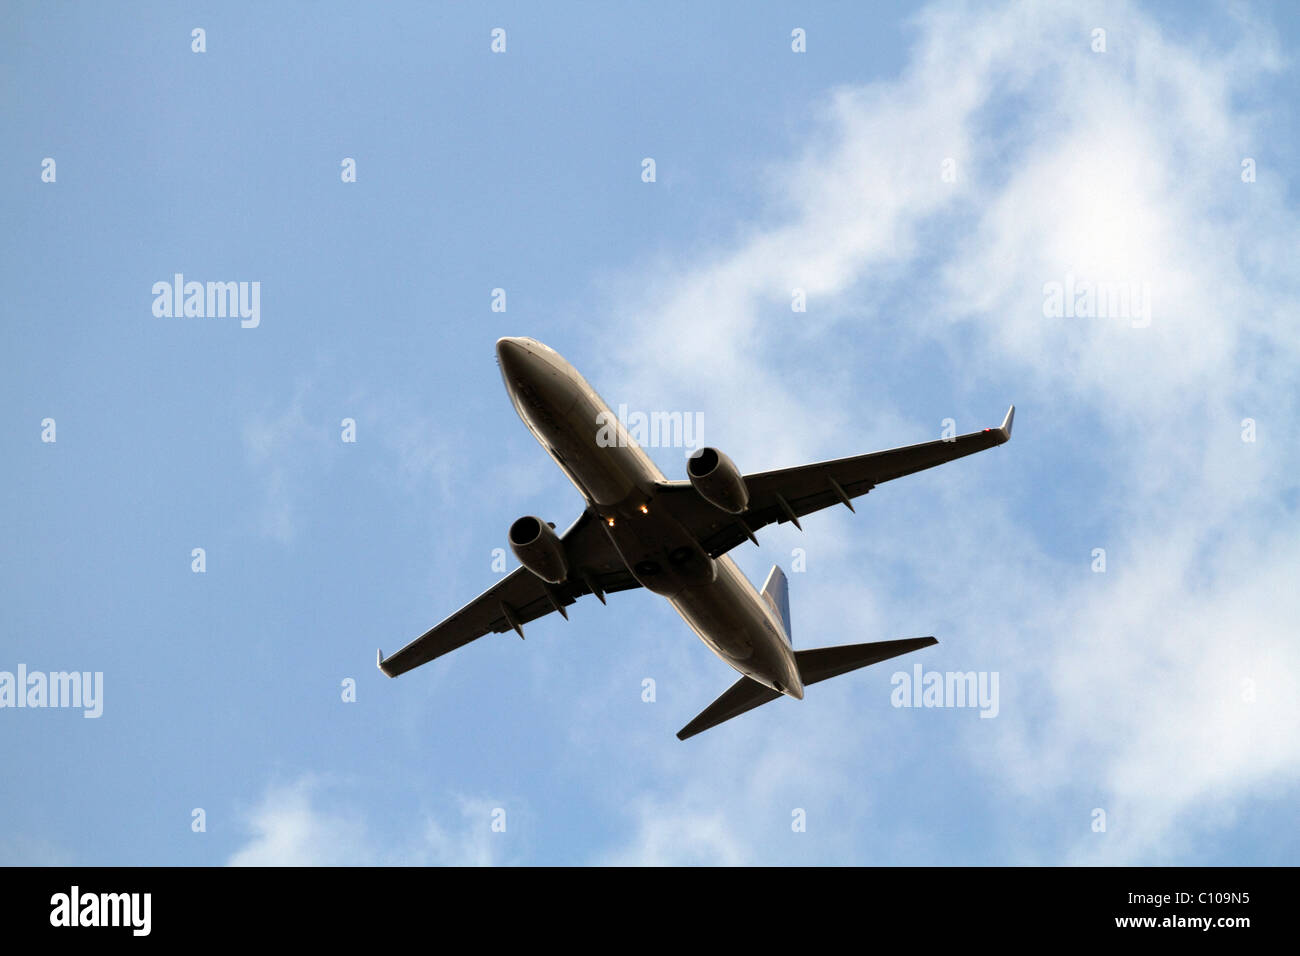 A Continental Airlines airplane flying over the Meadowlands approaching Newark Airport in New Jersey, USA - Stock Image